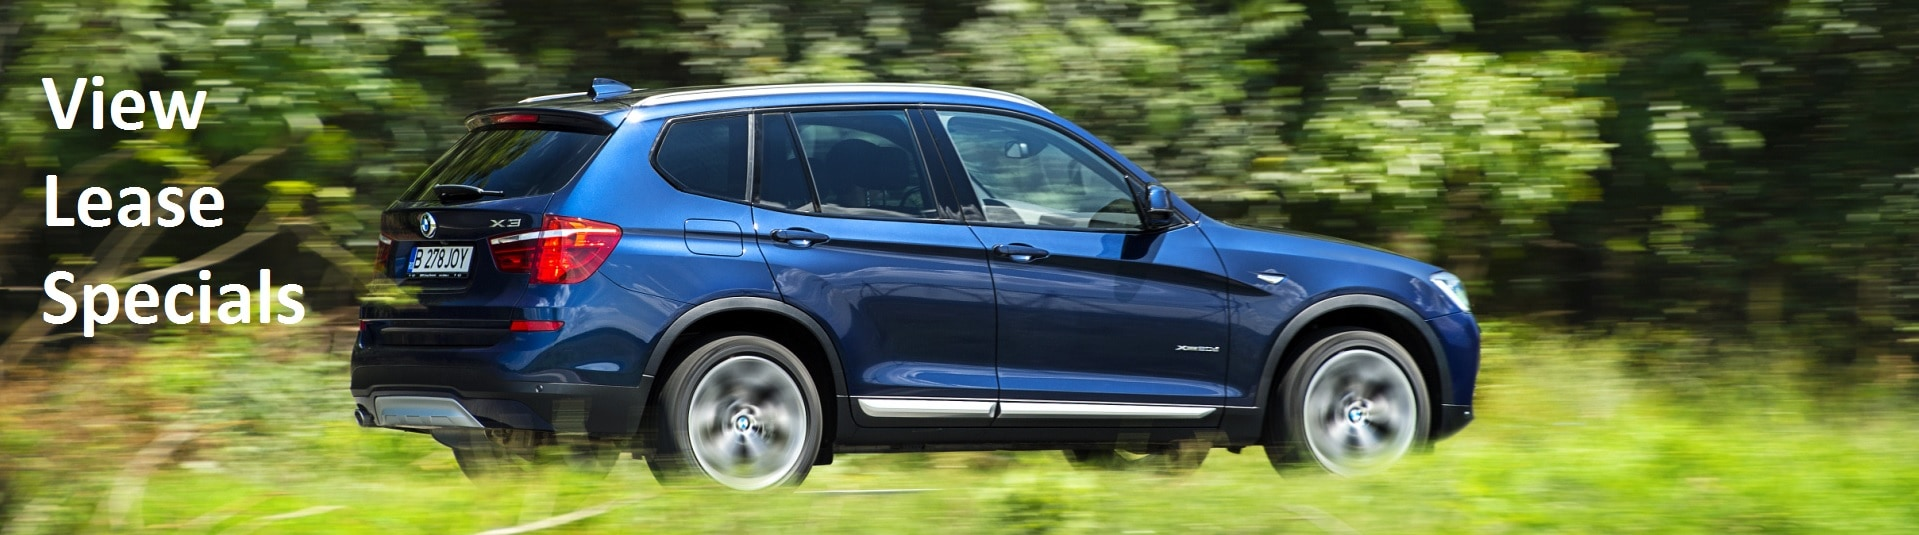 89f3aed11a57 Buy or Lease BMW X3 Series Los